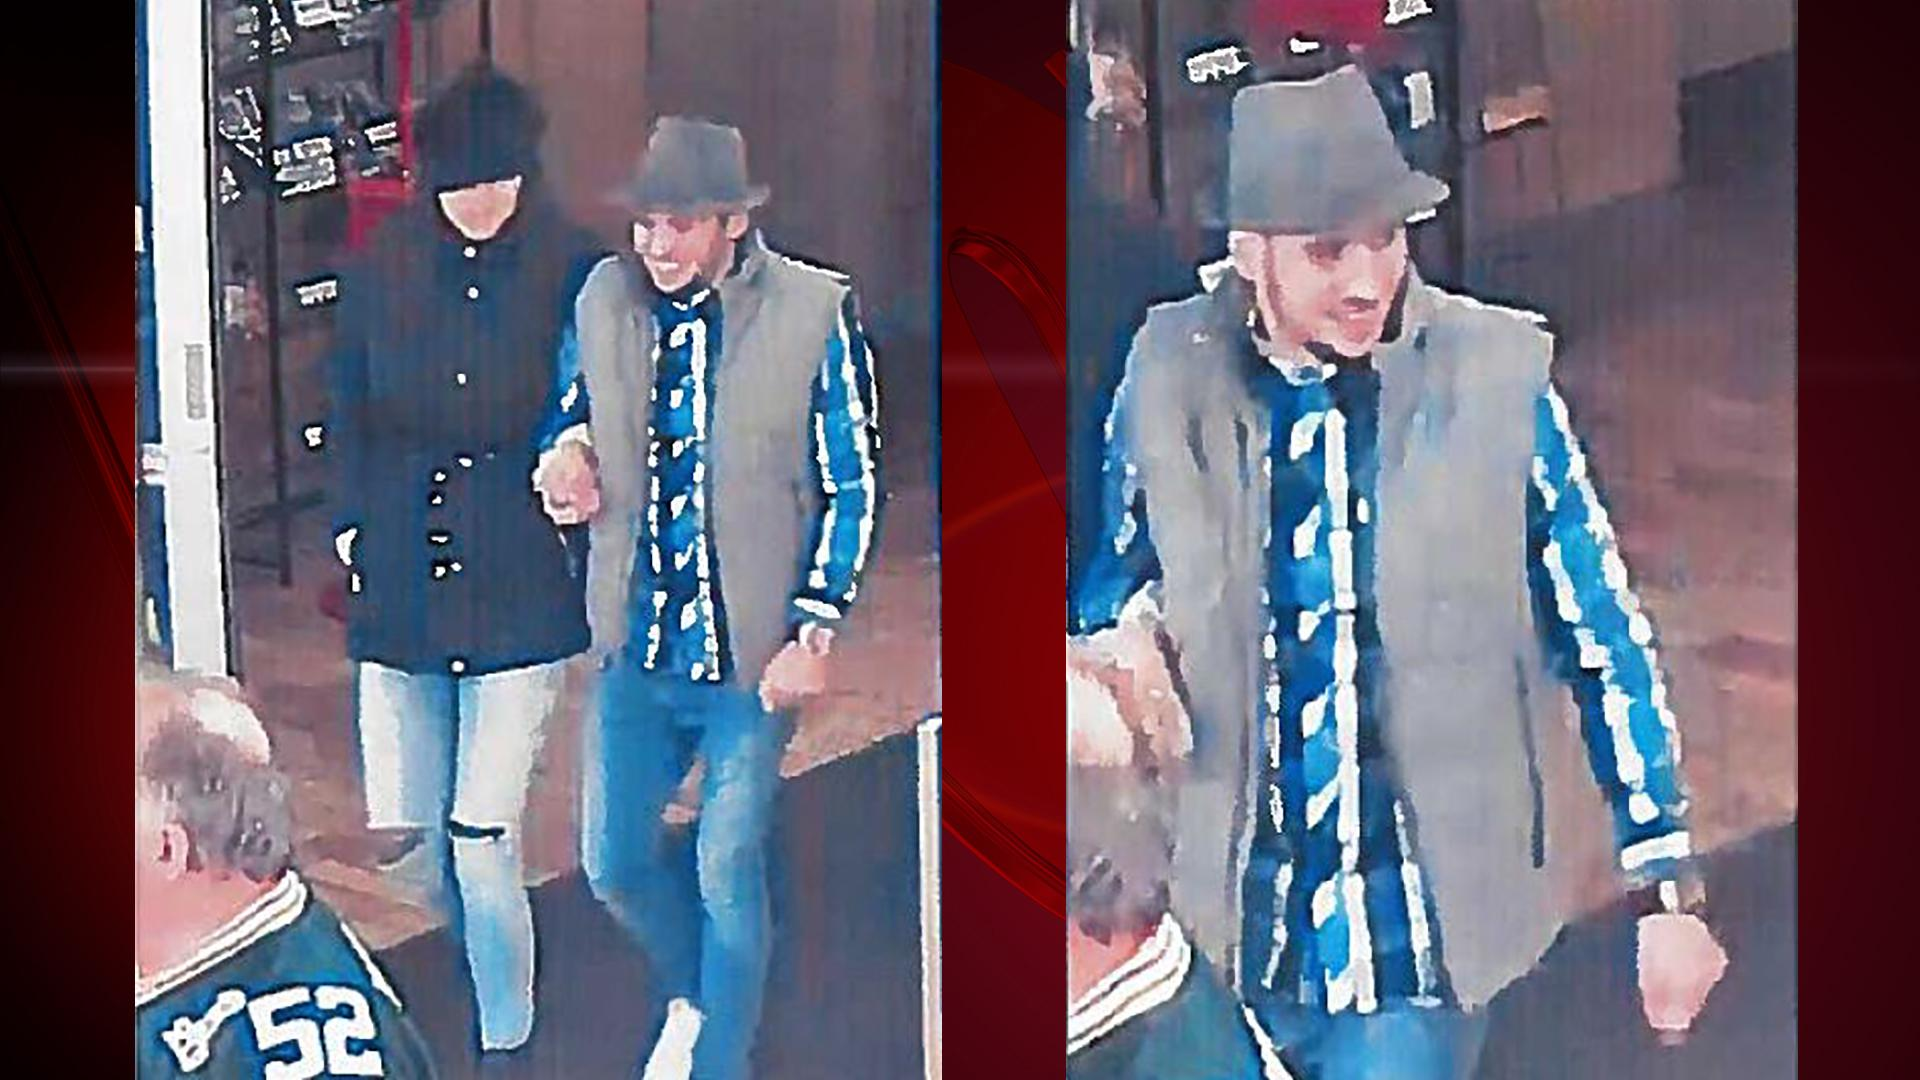 Surveillance images of two suspects believed to be involved in a card skimming incident at Woodman's store in Howard, November 19, 2017. (Photo courtesy of Brown County Sheriff's Office)